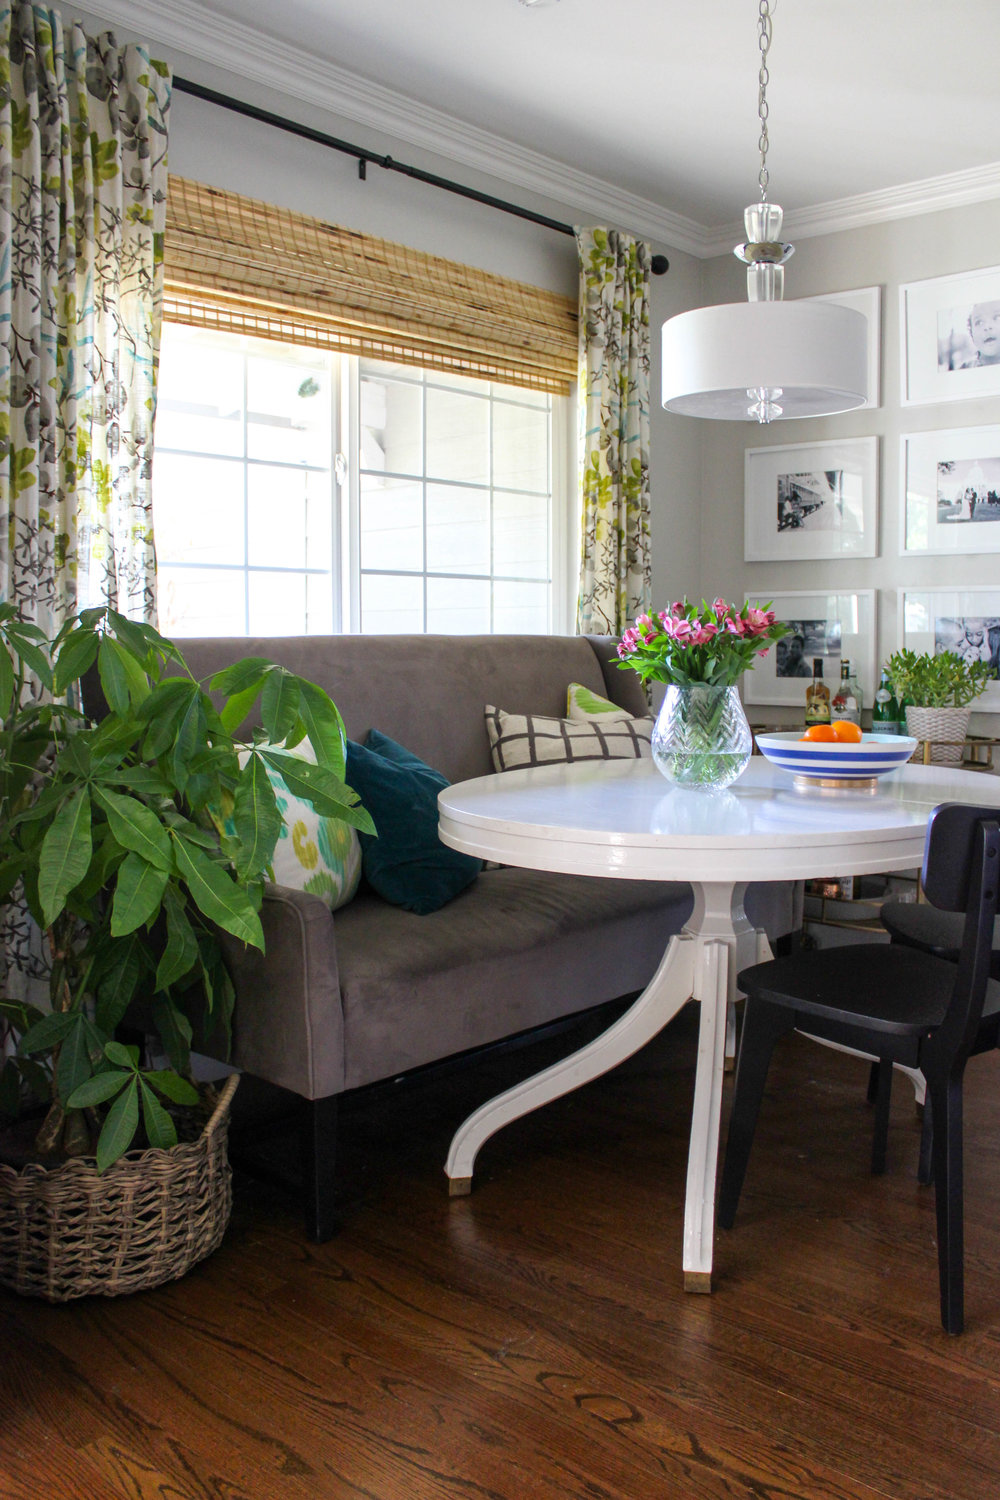 Small Home Style: Three Design Ideas for Modern Banquette Dining ...